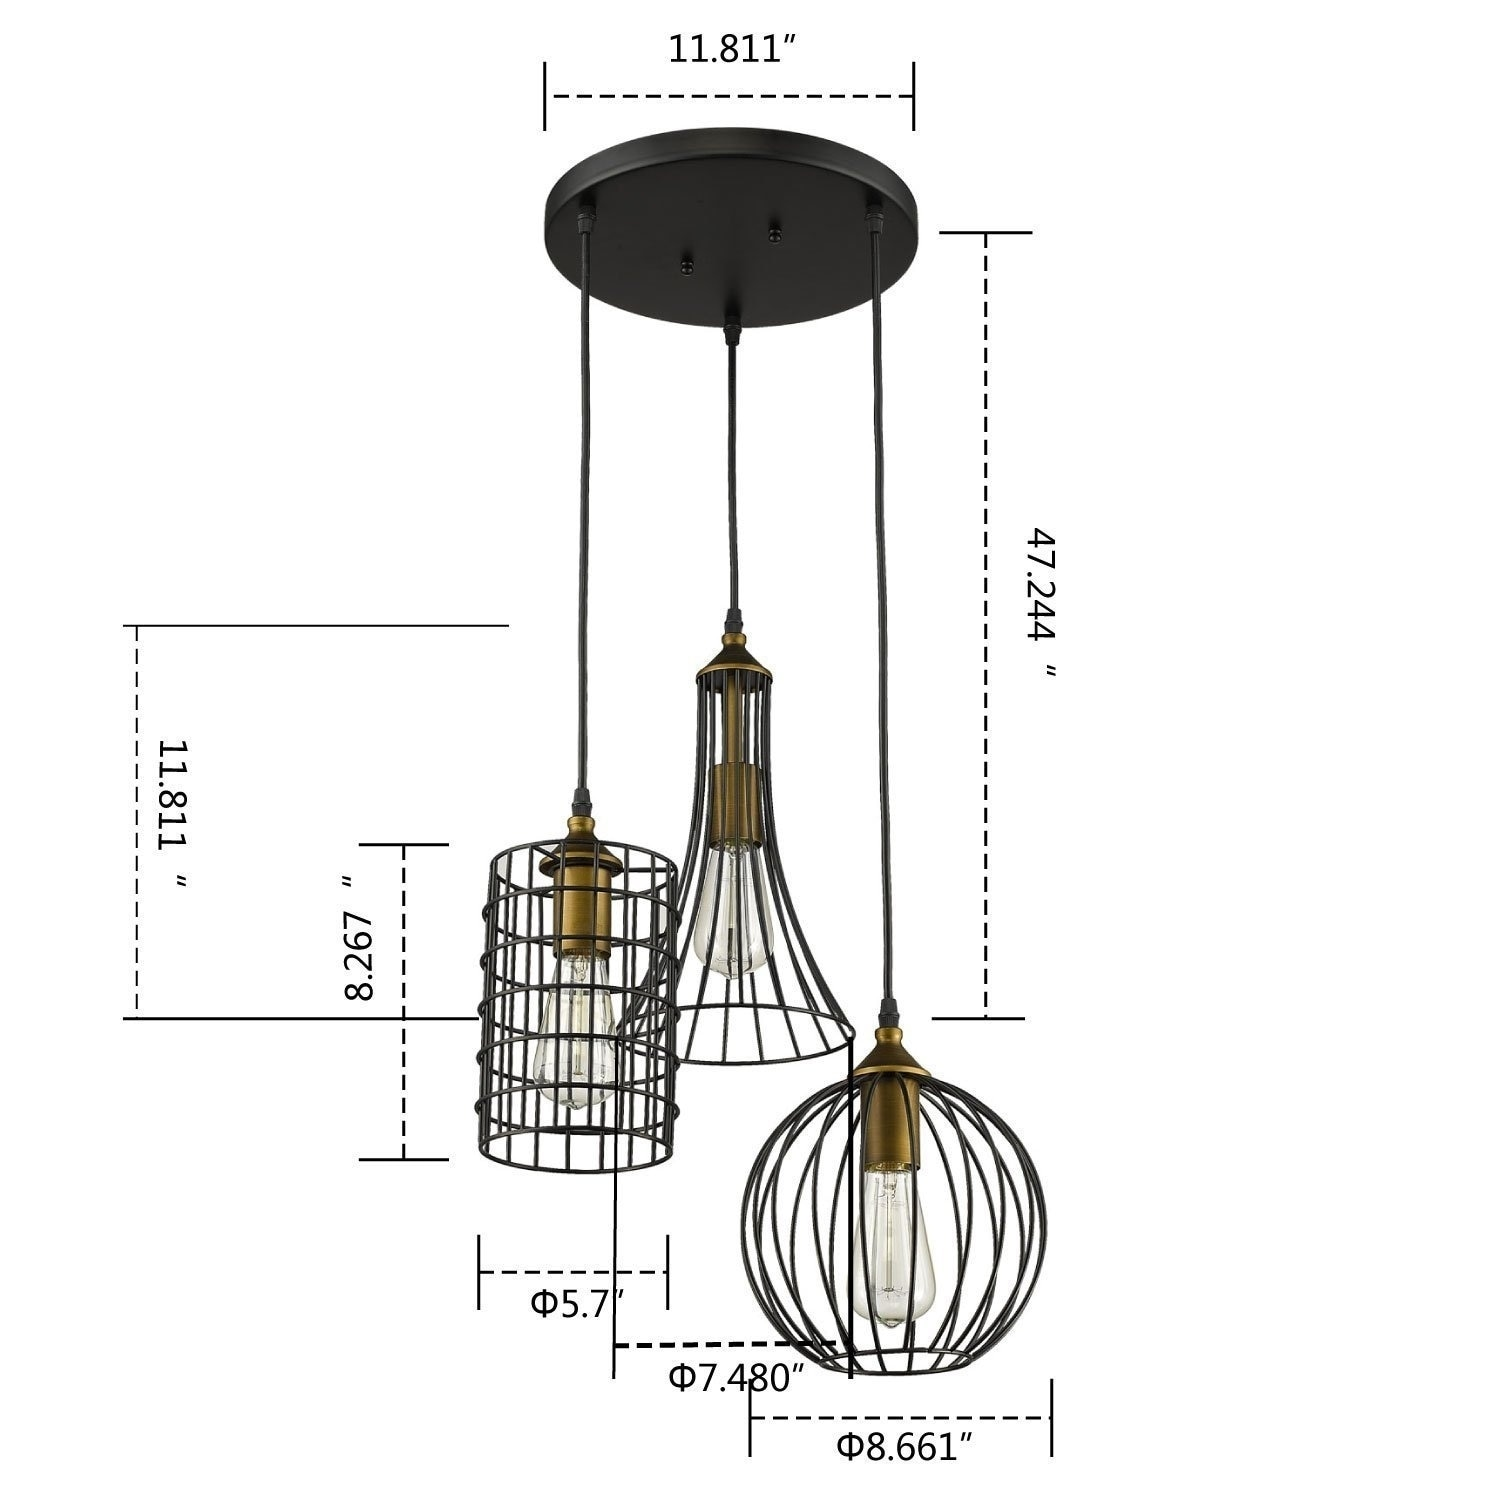 Shop Antique 3 Lights Oil Rubbed Bronze Chandelier With Wire Cage Electrical Wiring Light Fixture Free Shipping Today 21827260